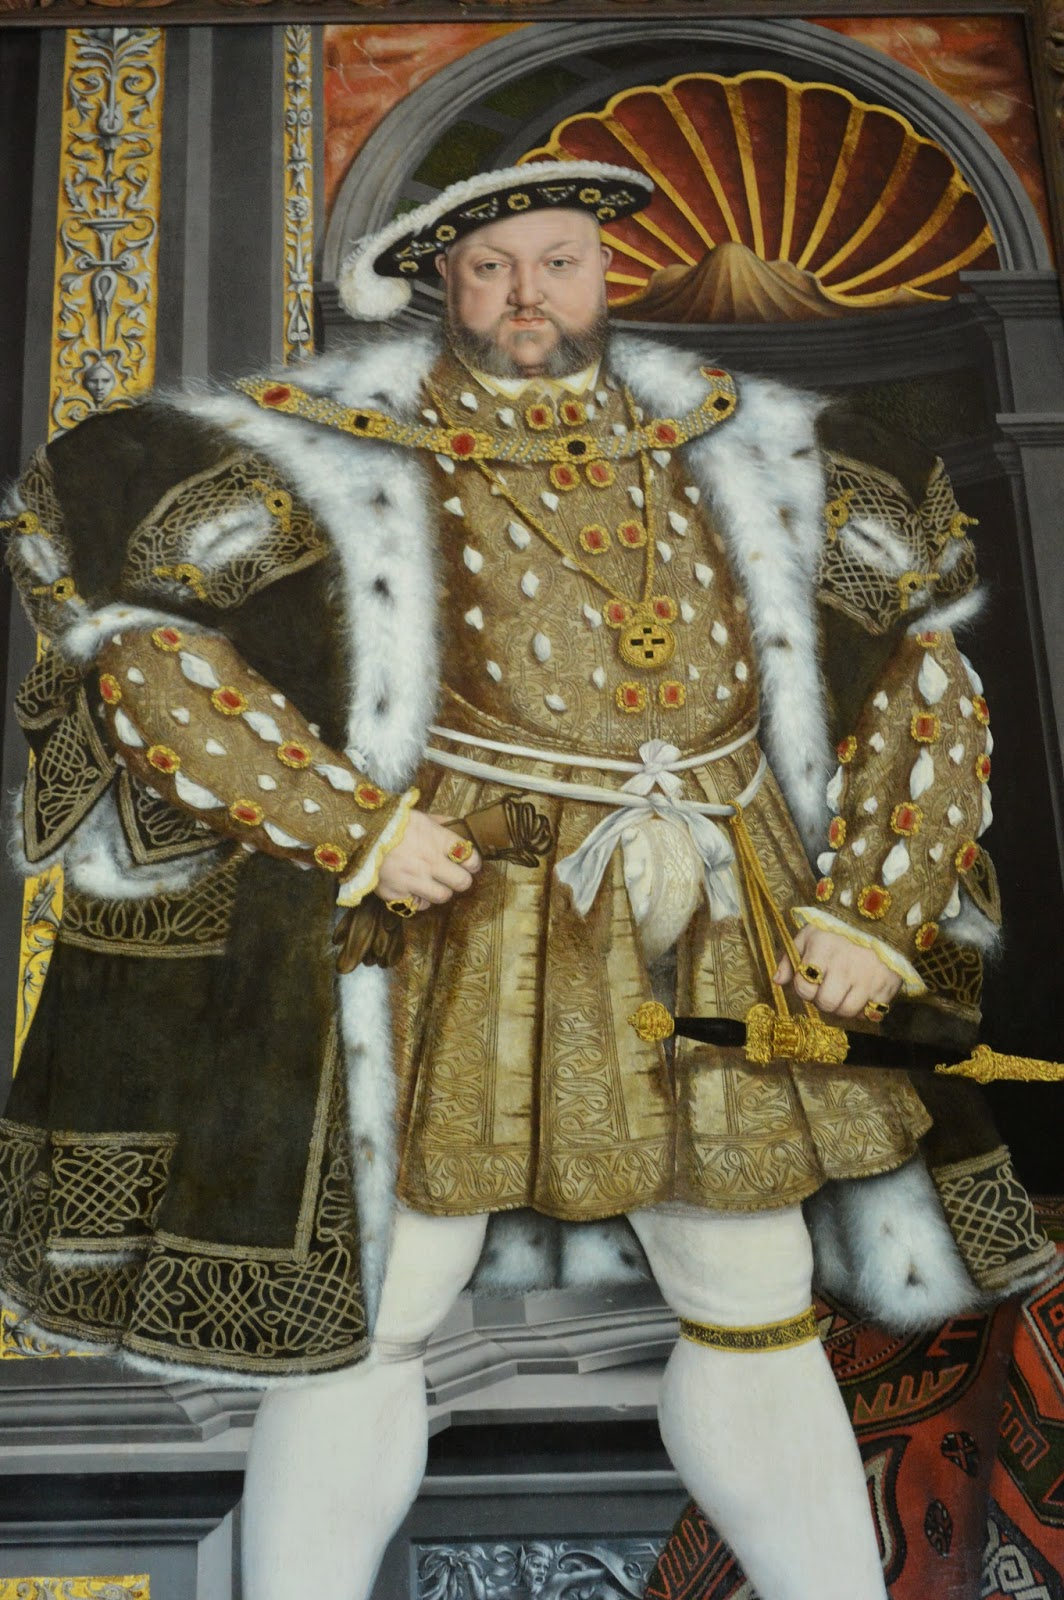 King Henery VIII, wide legs, portrait, rich, Tudor, royal, painting,  Petworth House and Garden, inside, interior, visit, review, National Trust, history, UK, England, Sussex, historical property, old building, culture, day trip, photo, photograph